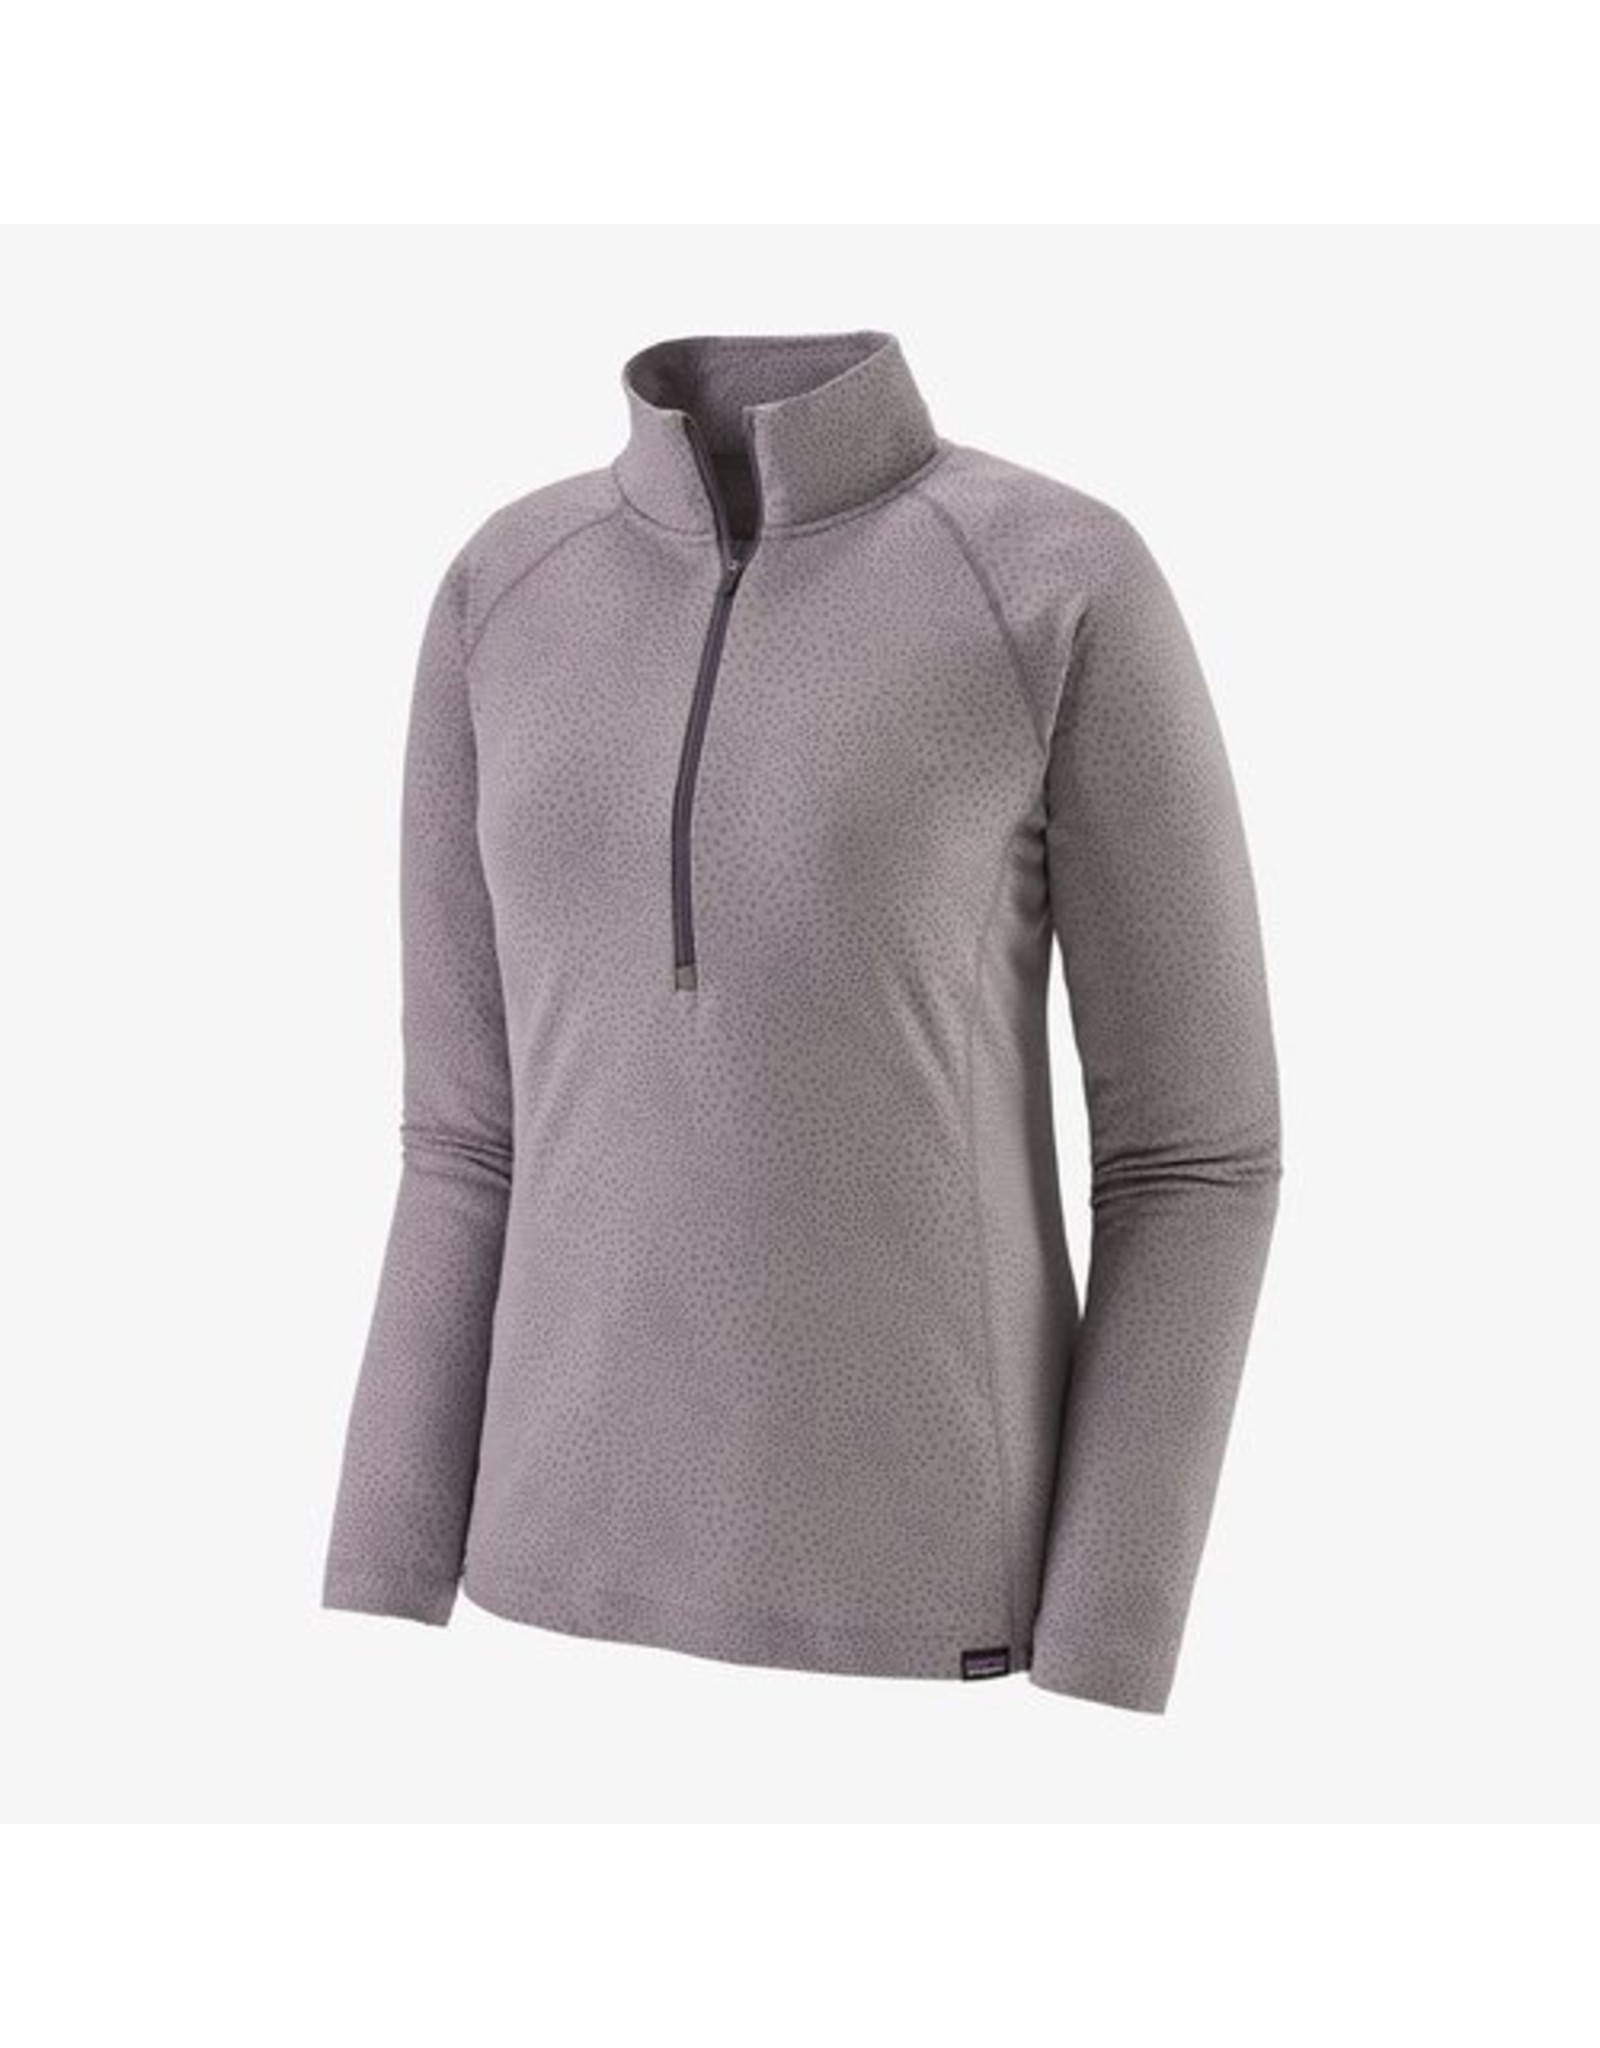 Patagonia Patagonia - W's Capilene Mid Weight Zip Neck